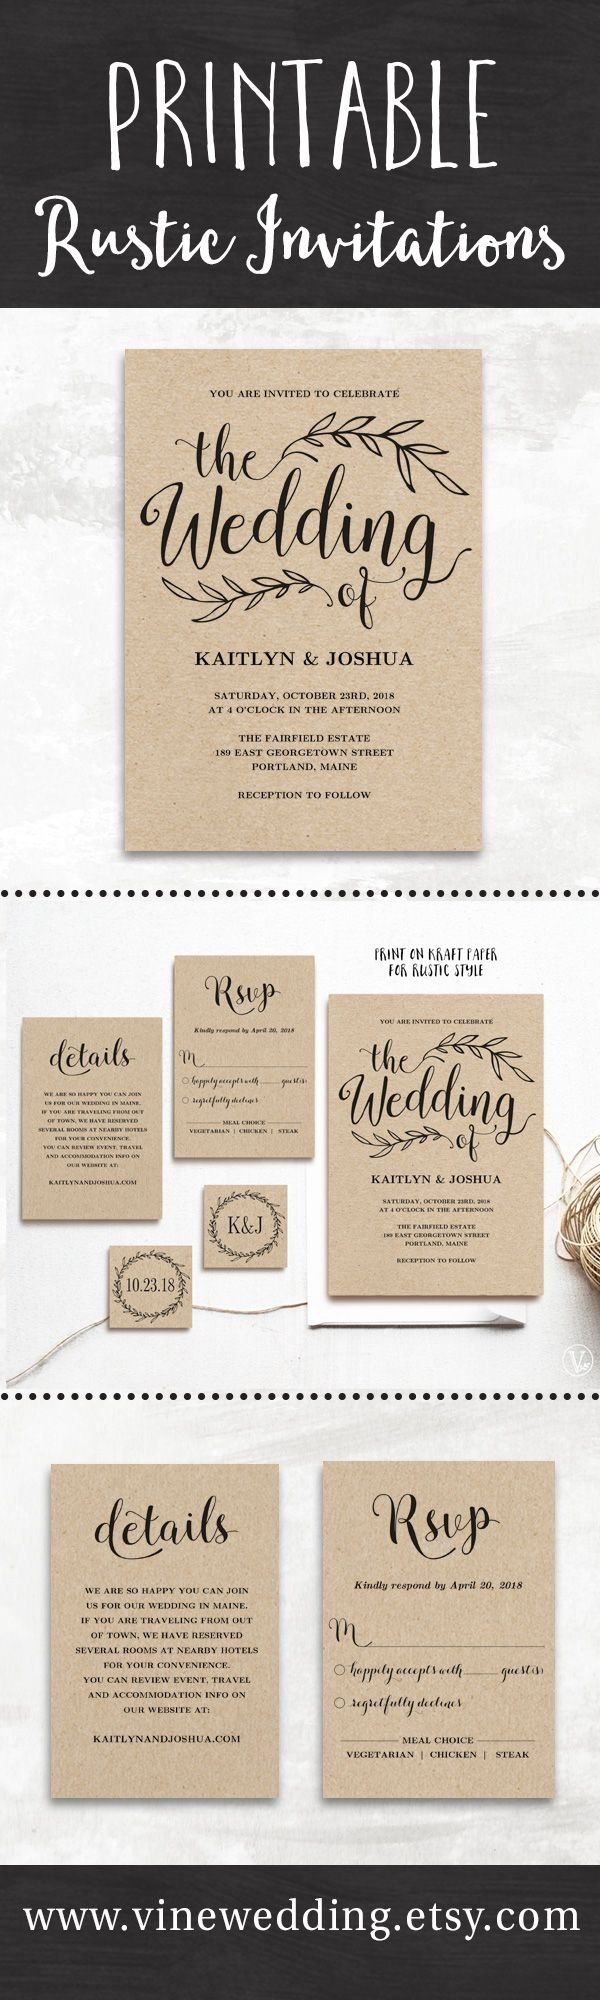 marriage invitation card in hindi language%0A Beautiful rustic wedding invitations  Editable instant download templates  you can print as many as you